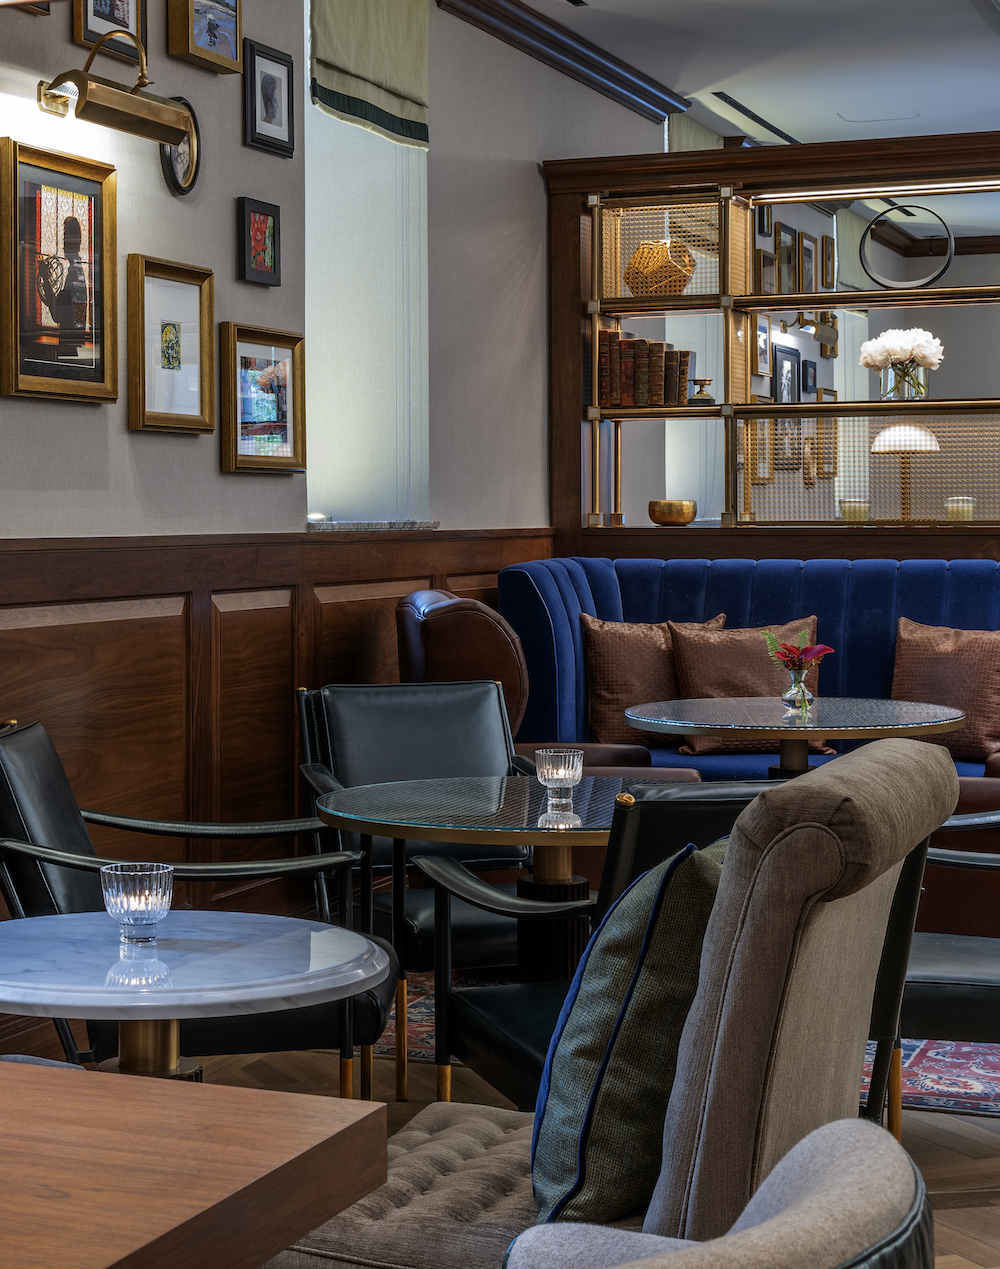 Image caption: The Fed Bar is the hotel's new F&B unit. | Image credit: Langham Hotels